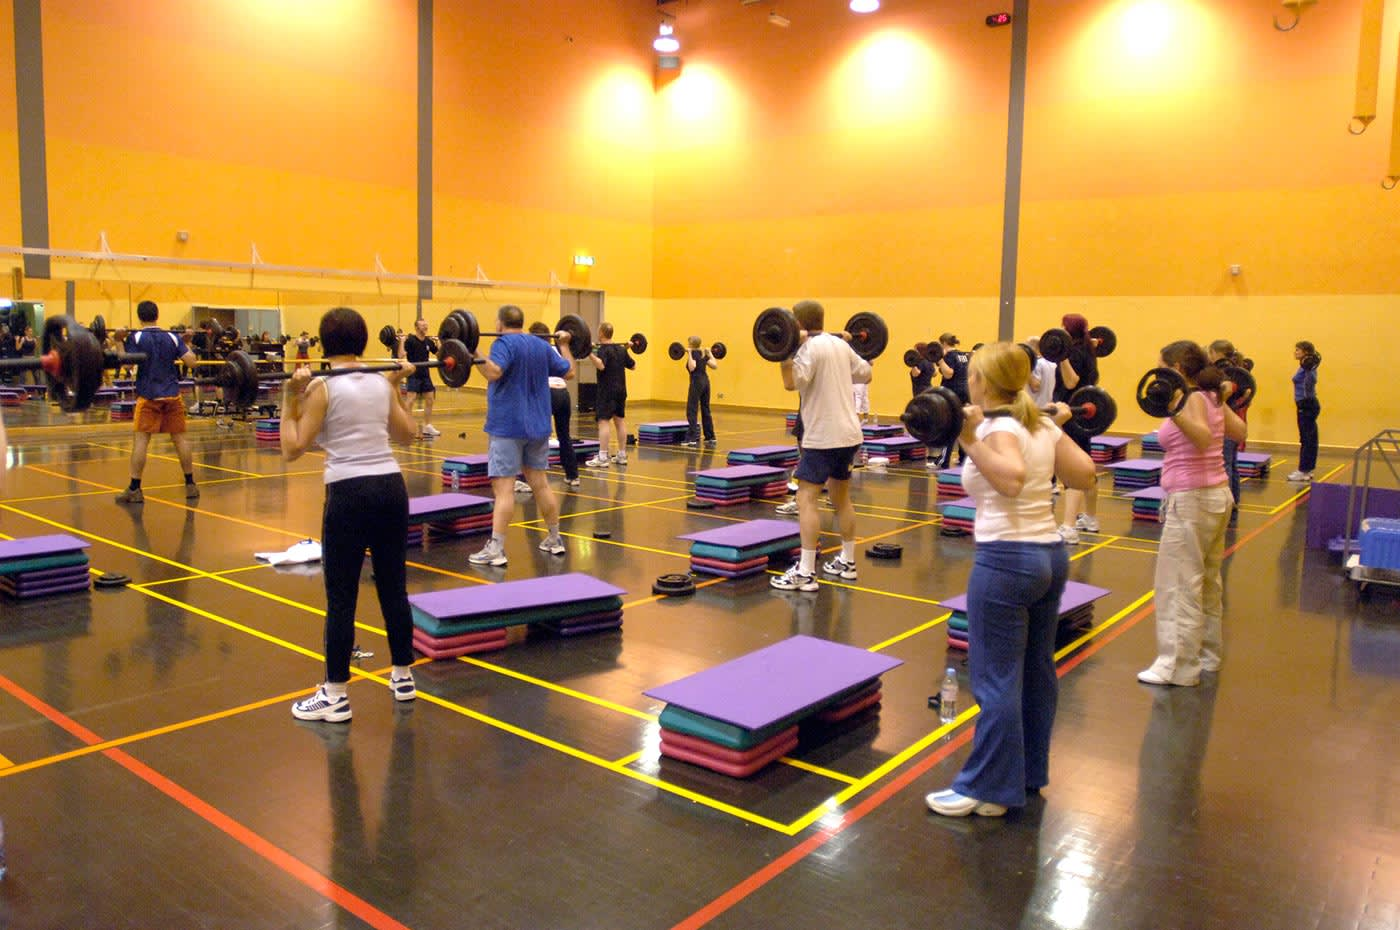 Take part in one of the free exercise classes